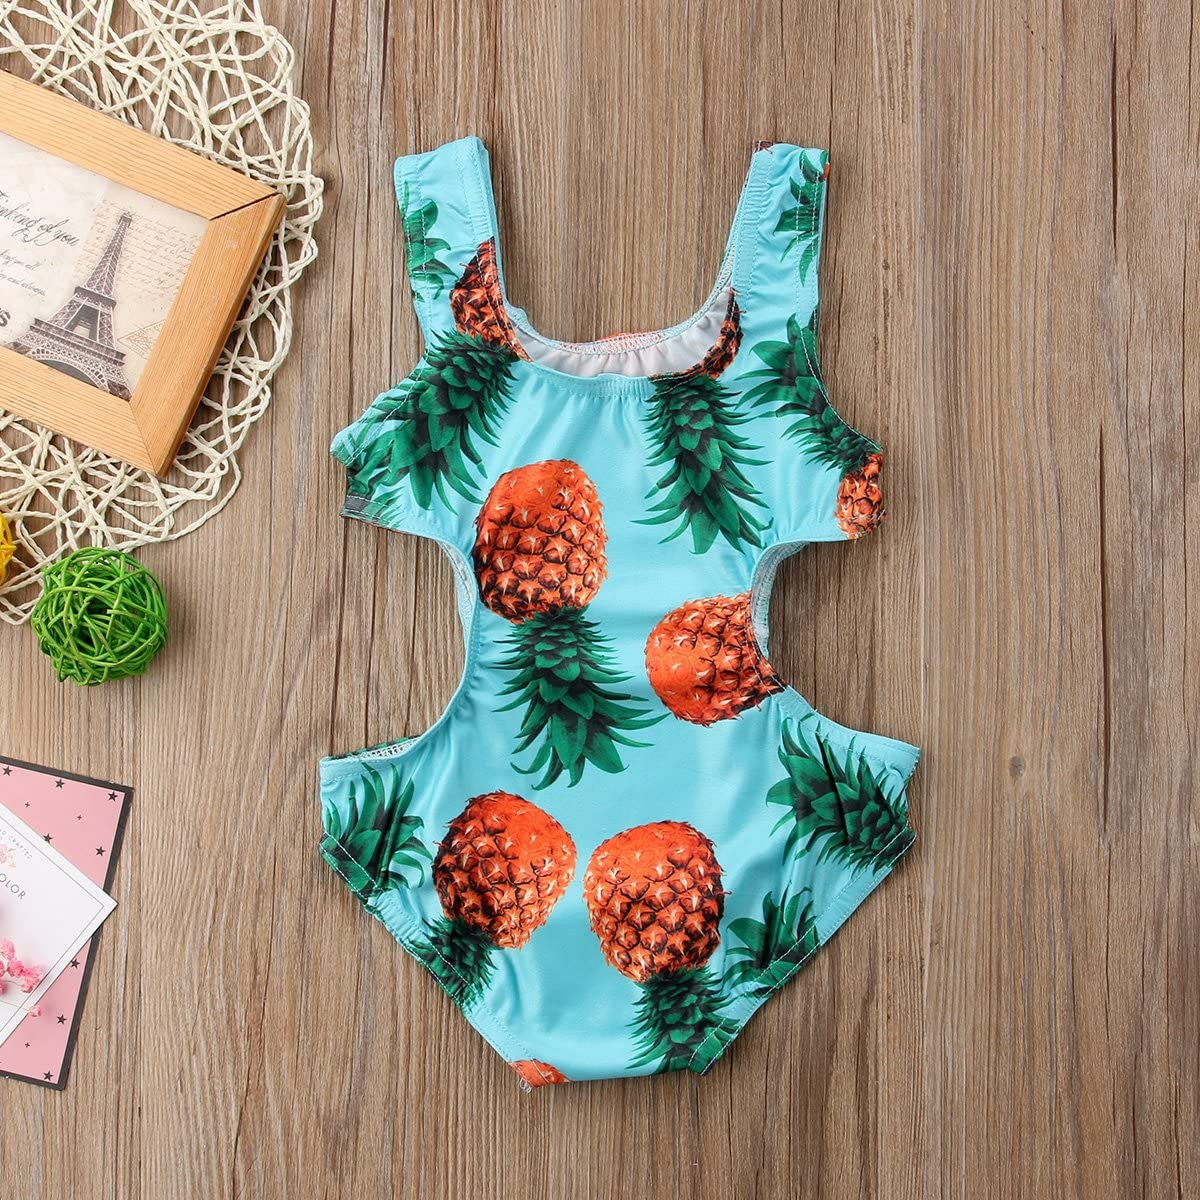 Pineapple Print Ruffle Straps Bathing Suit Jamlynbo Kids Baby Toddler Girls One-Piece Swimsuit